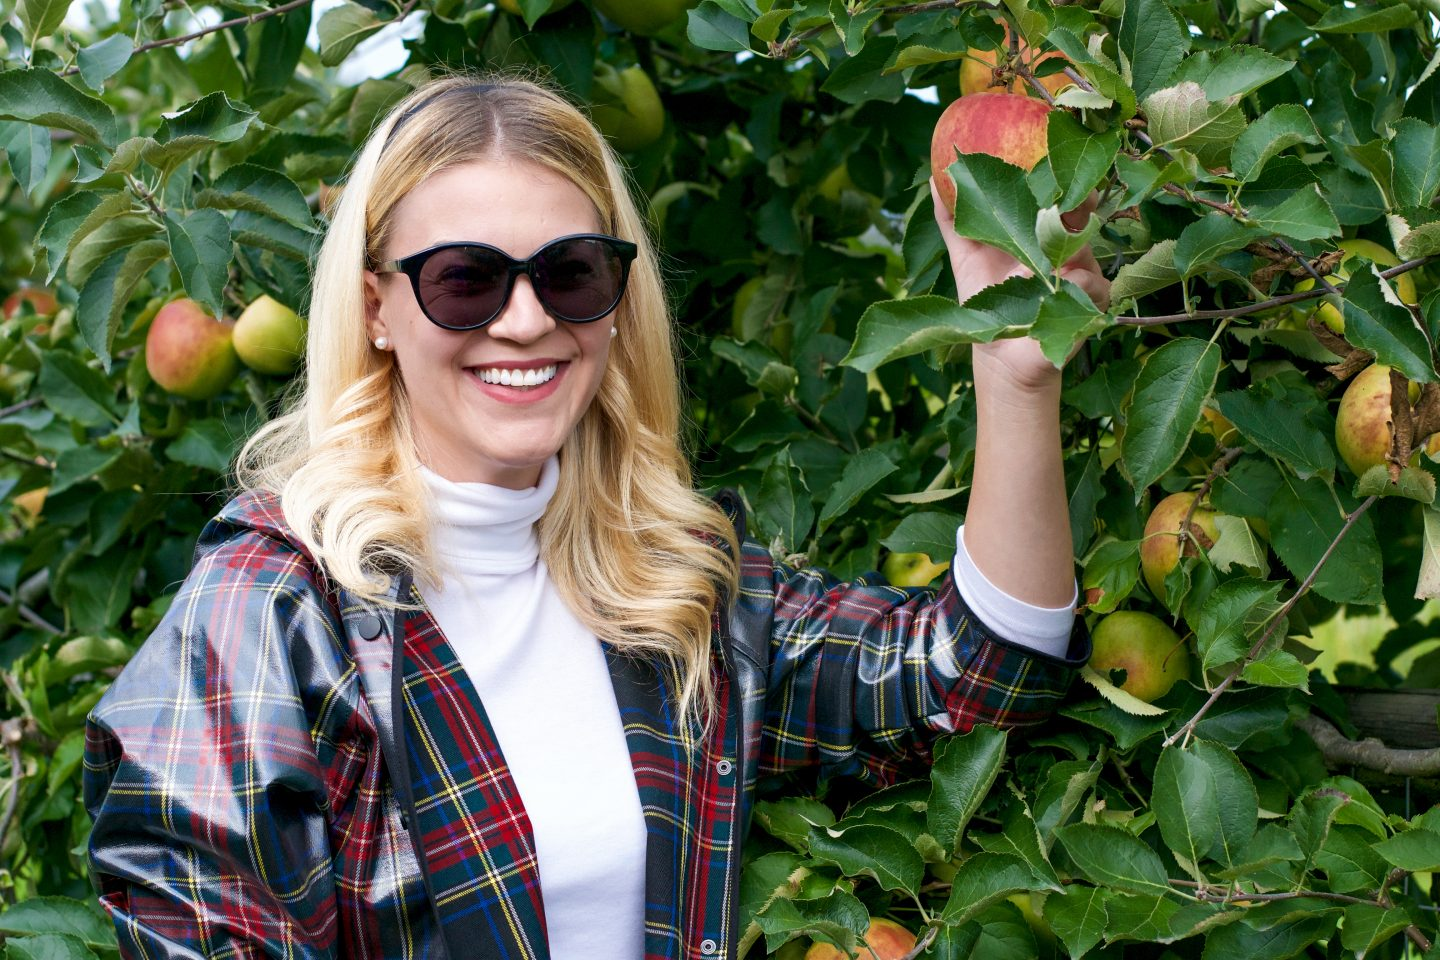 zara plaid raincoat hunter boots   Fall Activities by popular Seattle lifestyle blog, Whit Wanders: image of a woman in a apple orchard and wearing a Zara plaid rubberized rain coat, white turtle neck, jeans, and red Hunter rain boots.